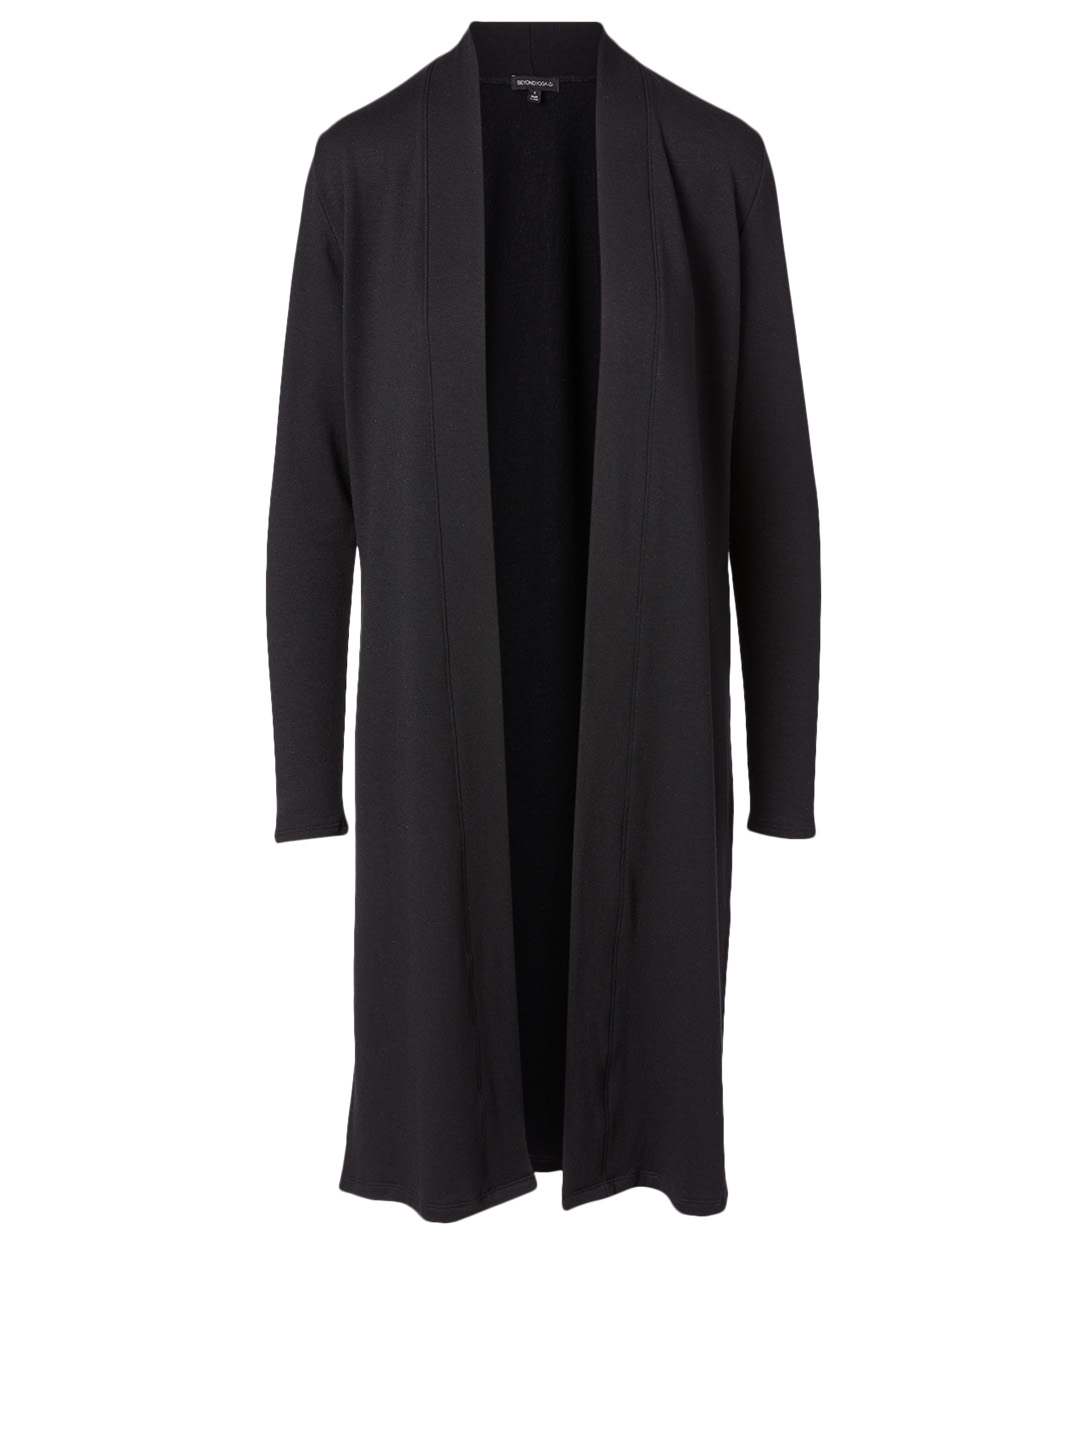 BEYOND YOGA Fleece Slit Duster Cardigan Women's Black